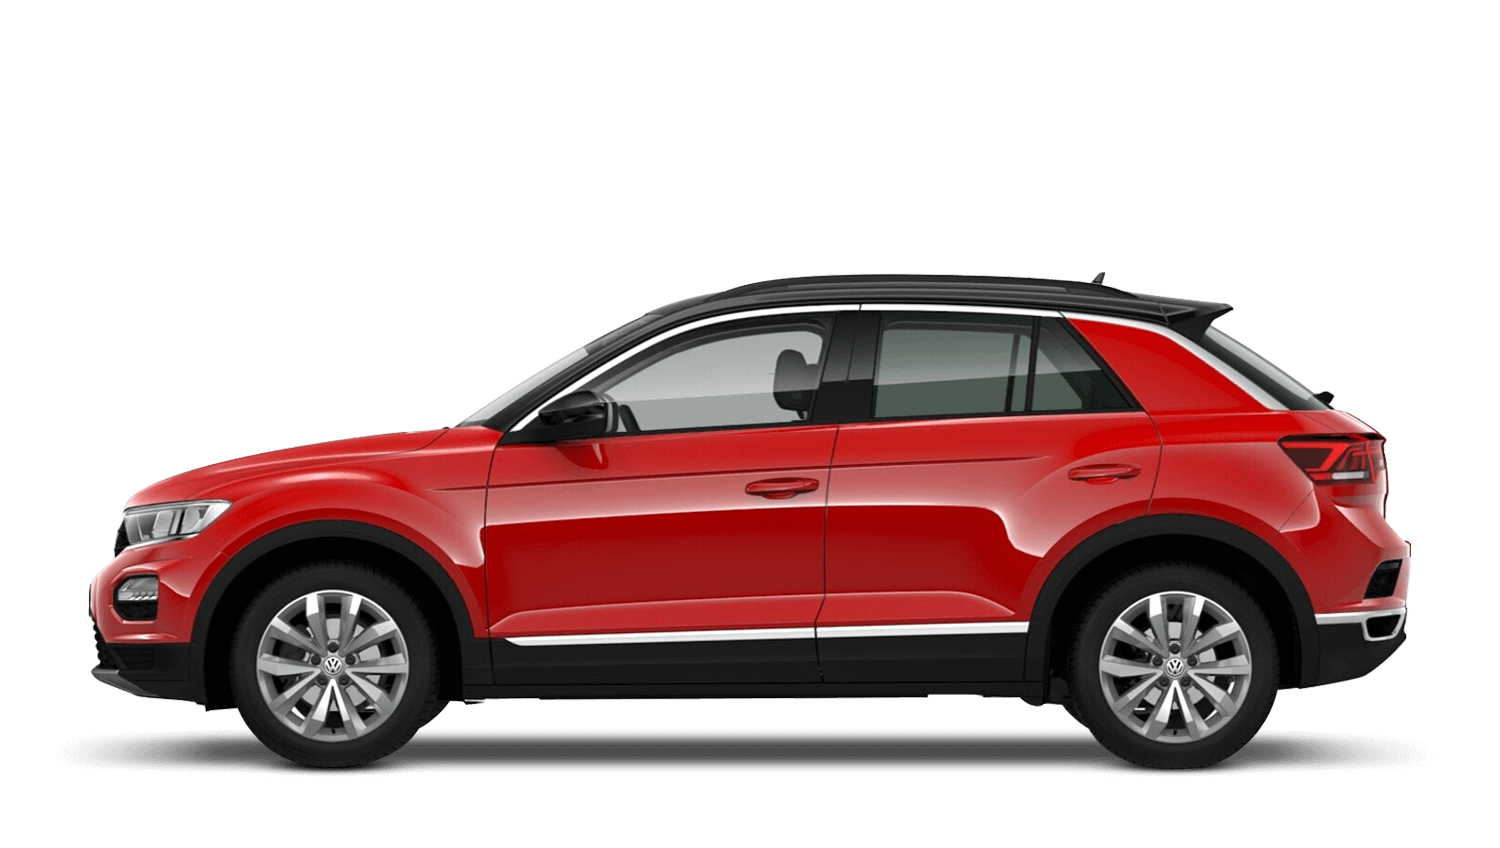 Flash Red with Black Roof (Solid) Volkswagen T Roc